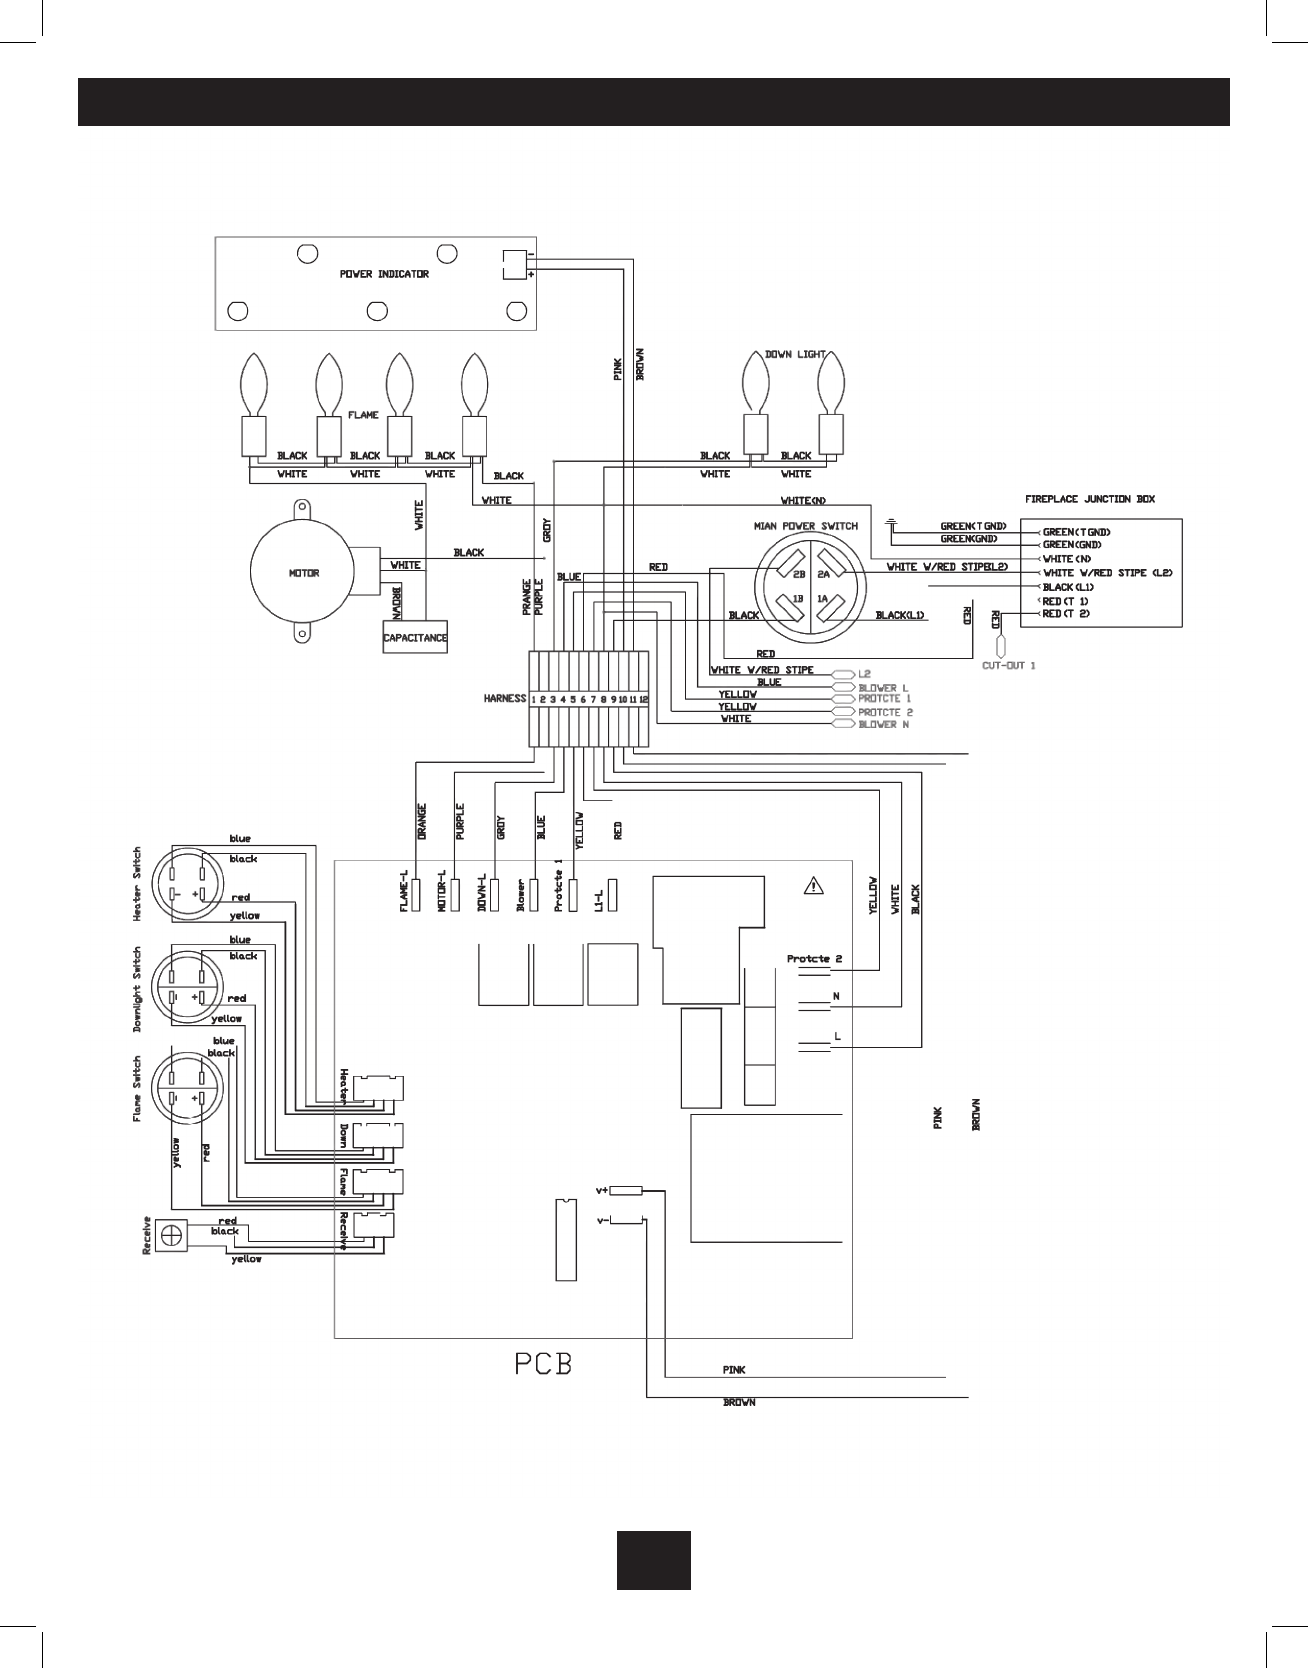 fireplace wiring diagram with 33eb304grs on Furnace Gas Valve Wiring Diagram likewise Ventless Gas Fireplace Replacement Parts Wiring Diagrams besides 12753 additionally Electrolux Epic 6500 Wiring Diagram as well Fasco Wiring Diagram.